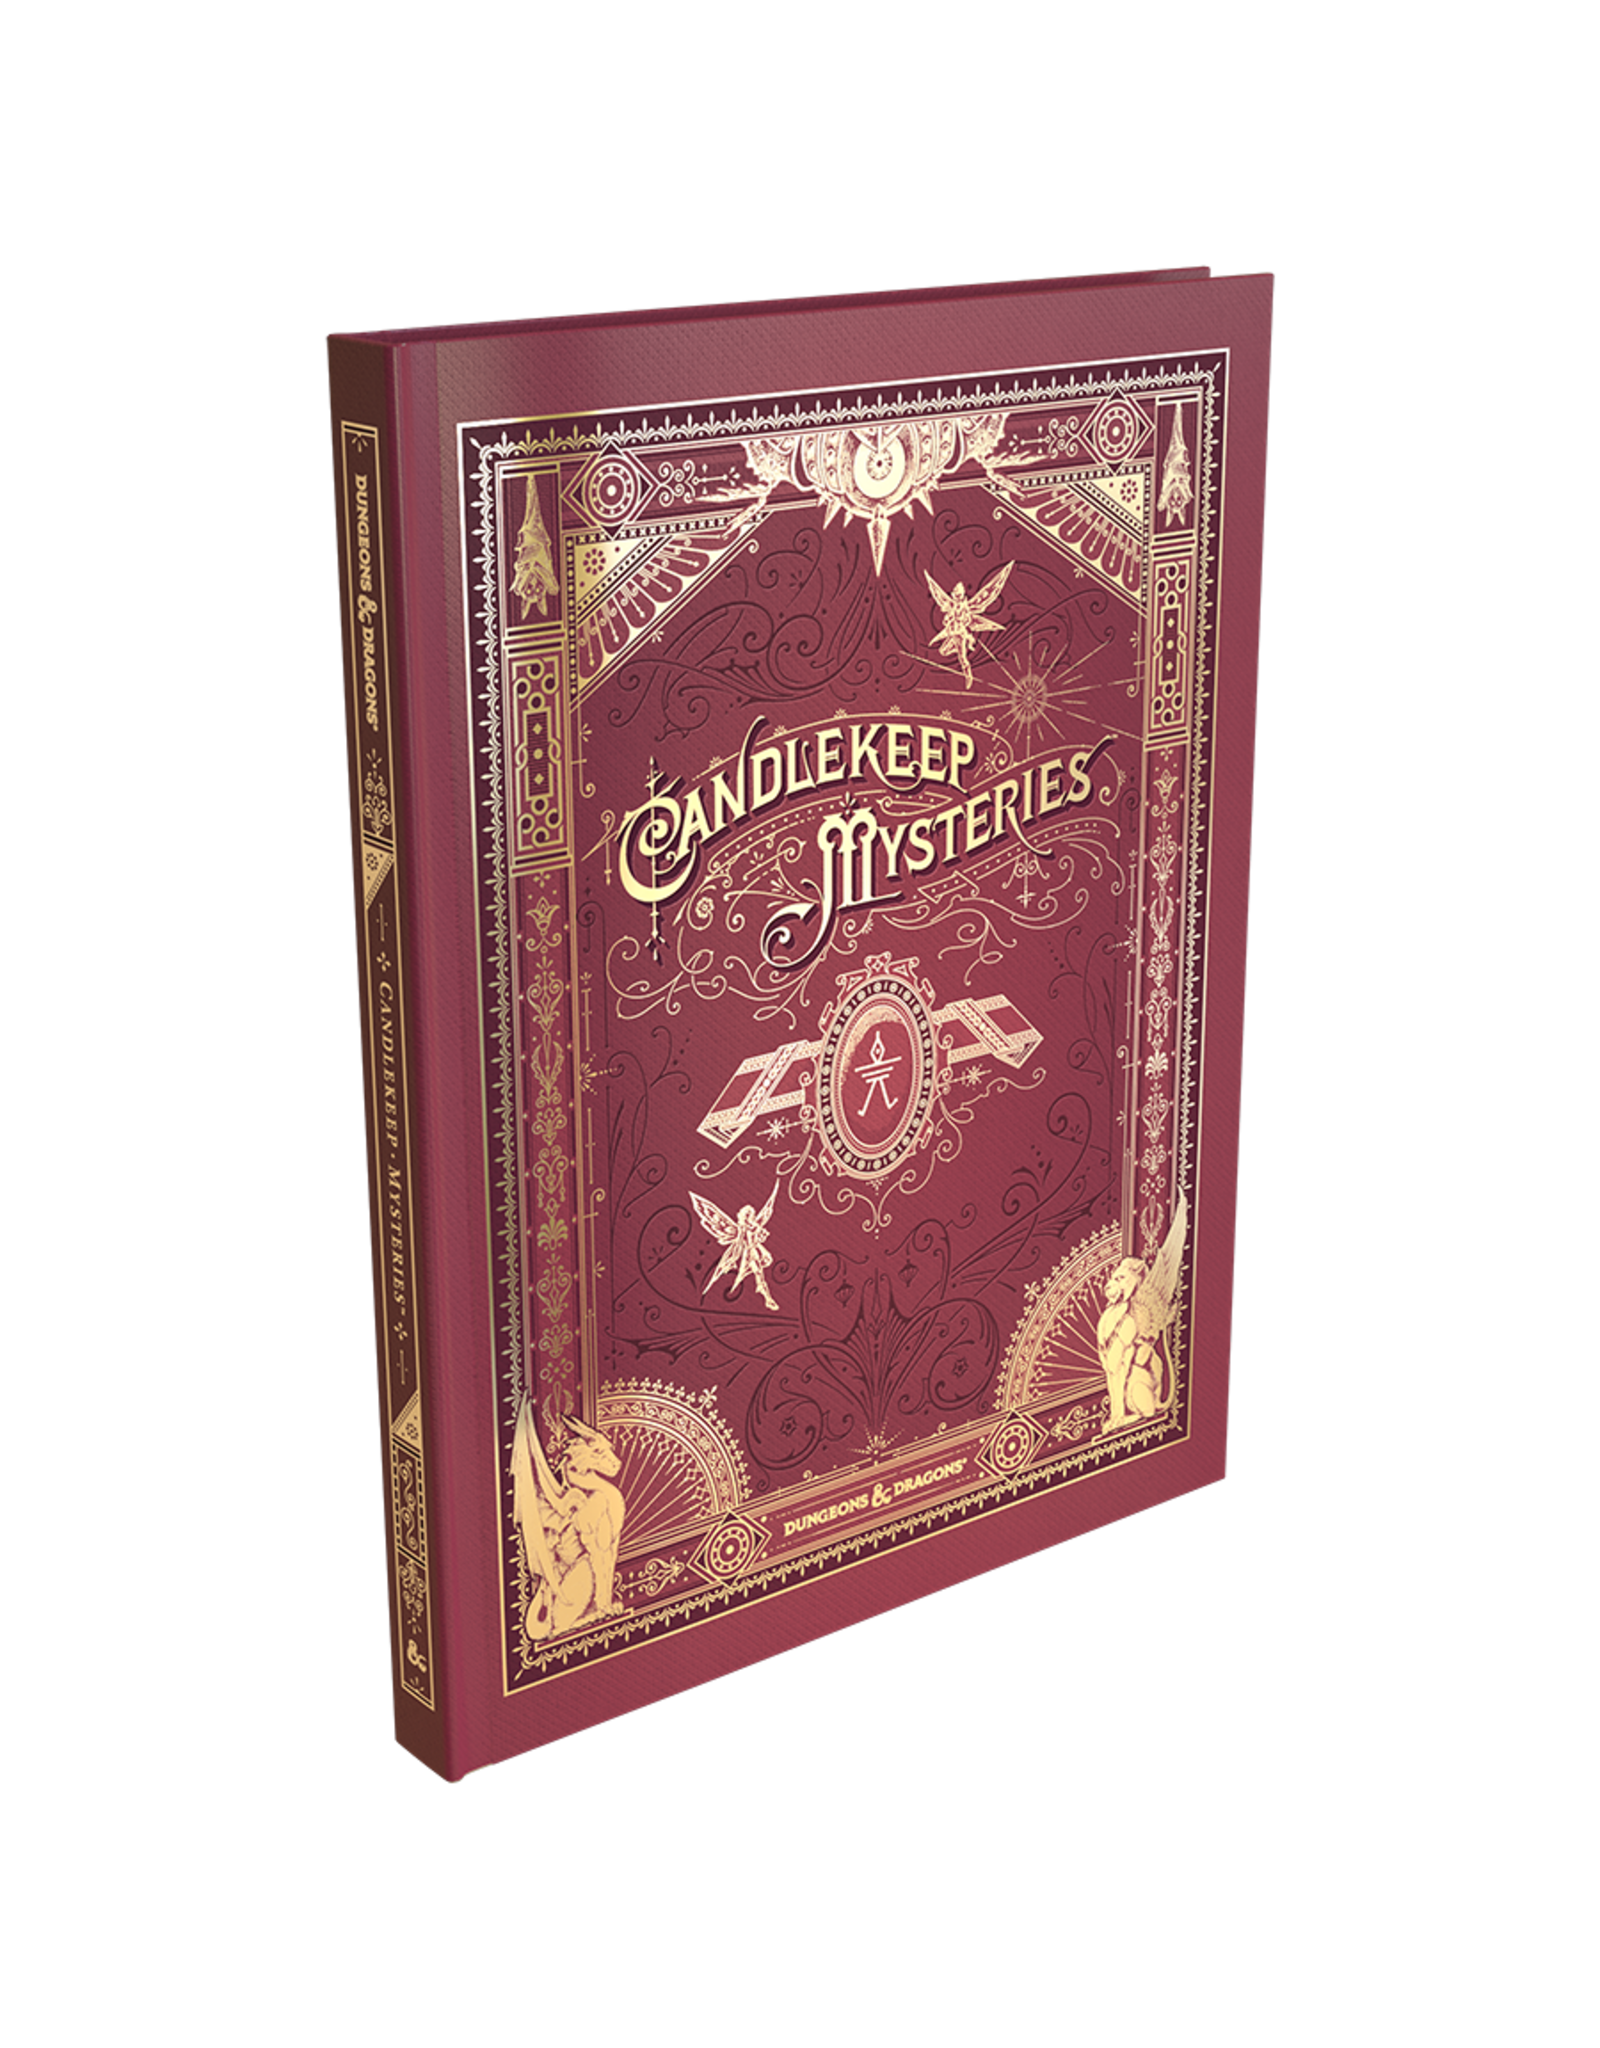 Dungeons & Dragons: Candlekeep Mysteries (Brick & Mortar Cover)